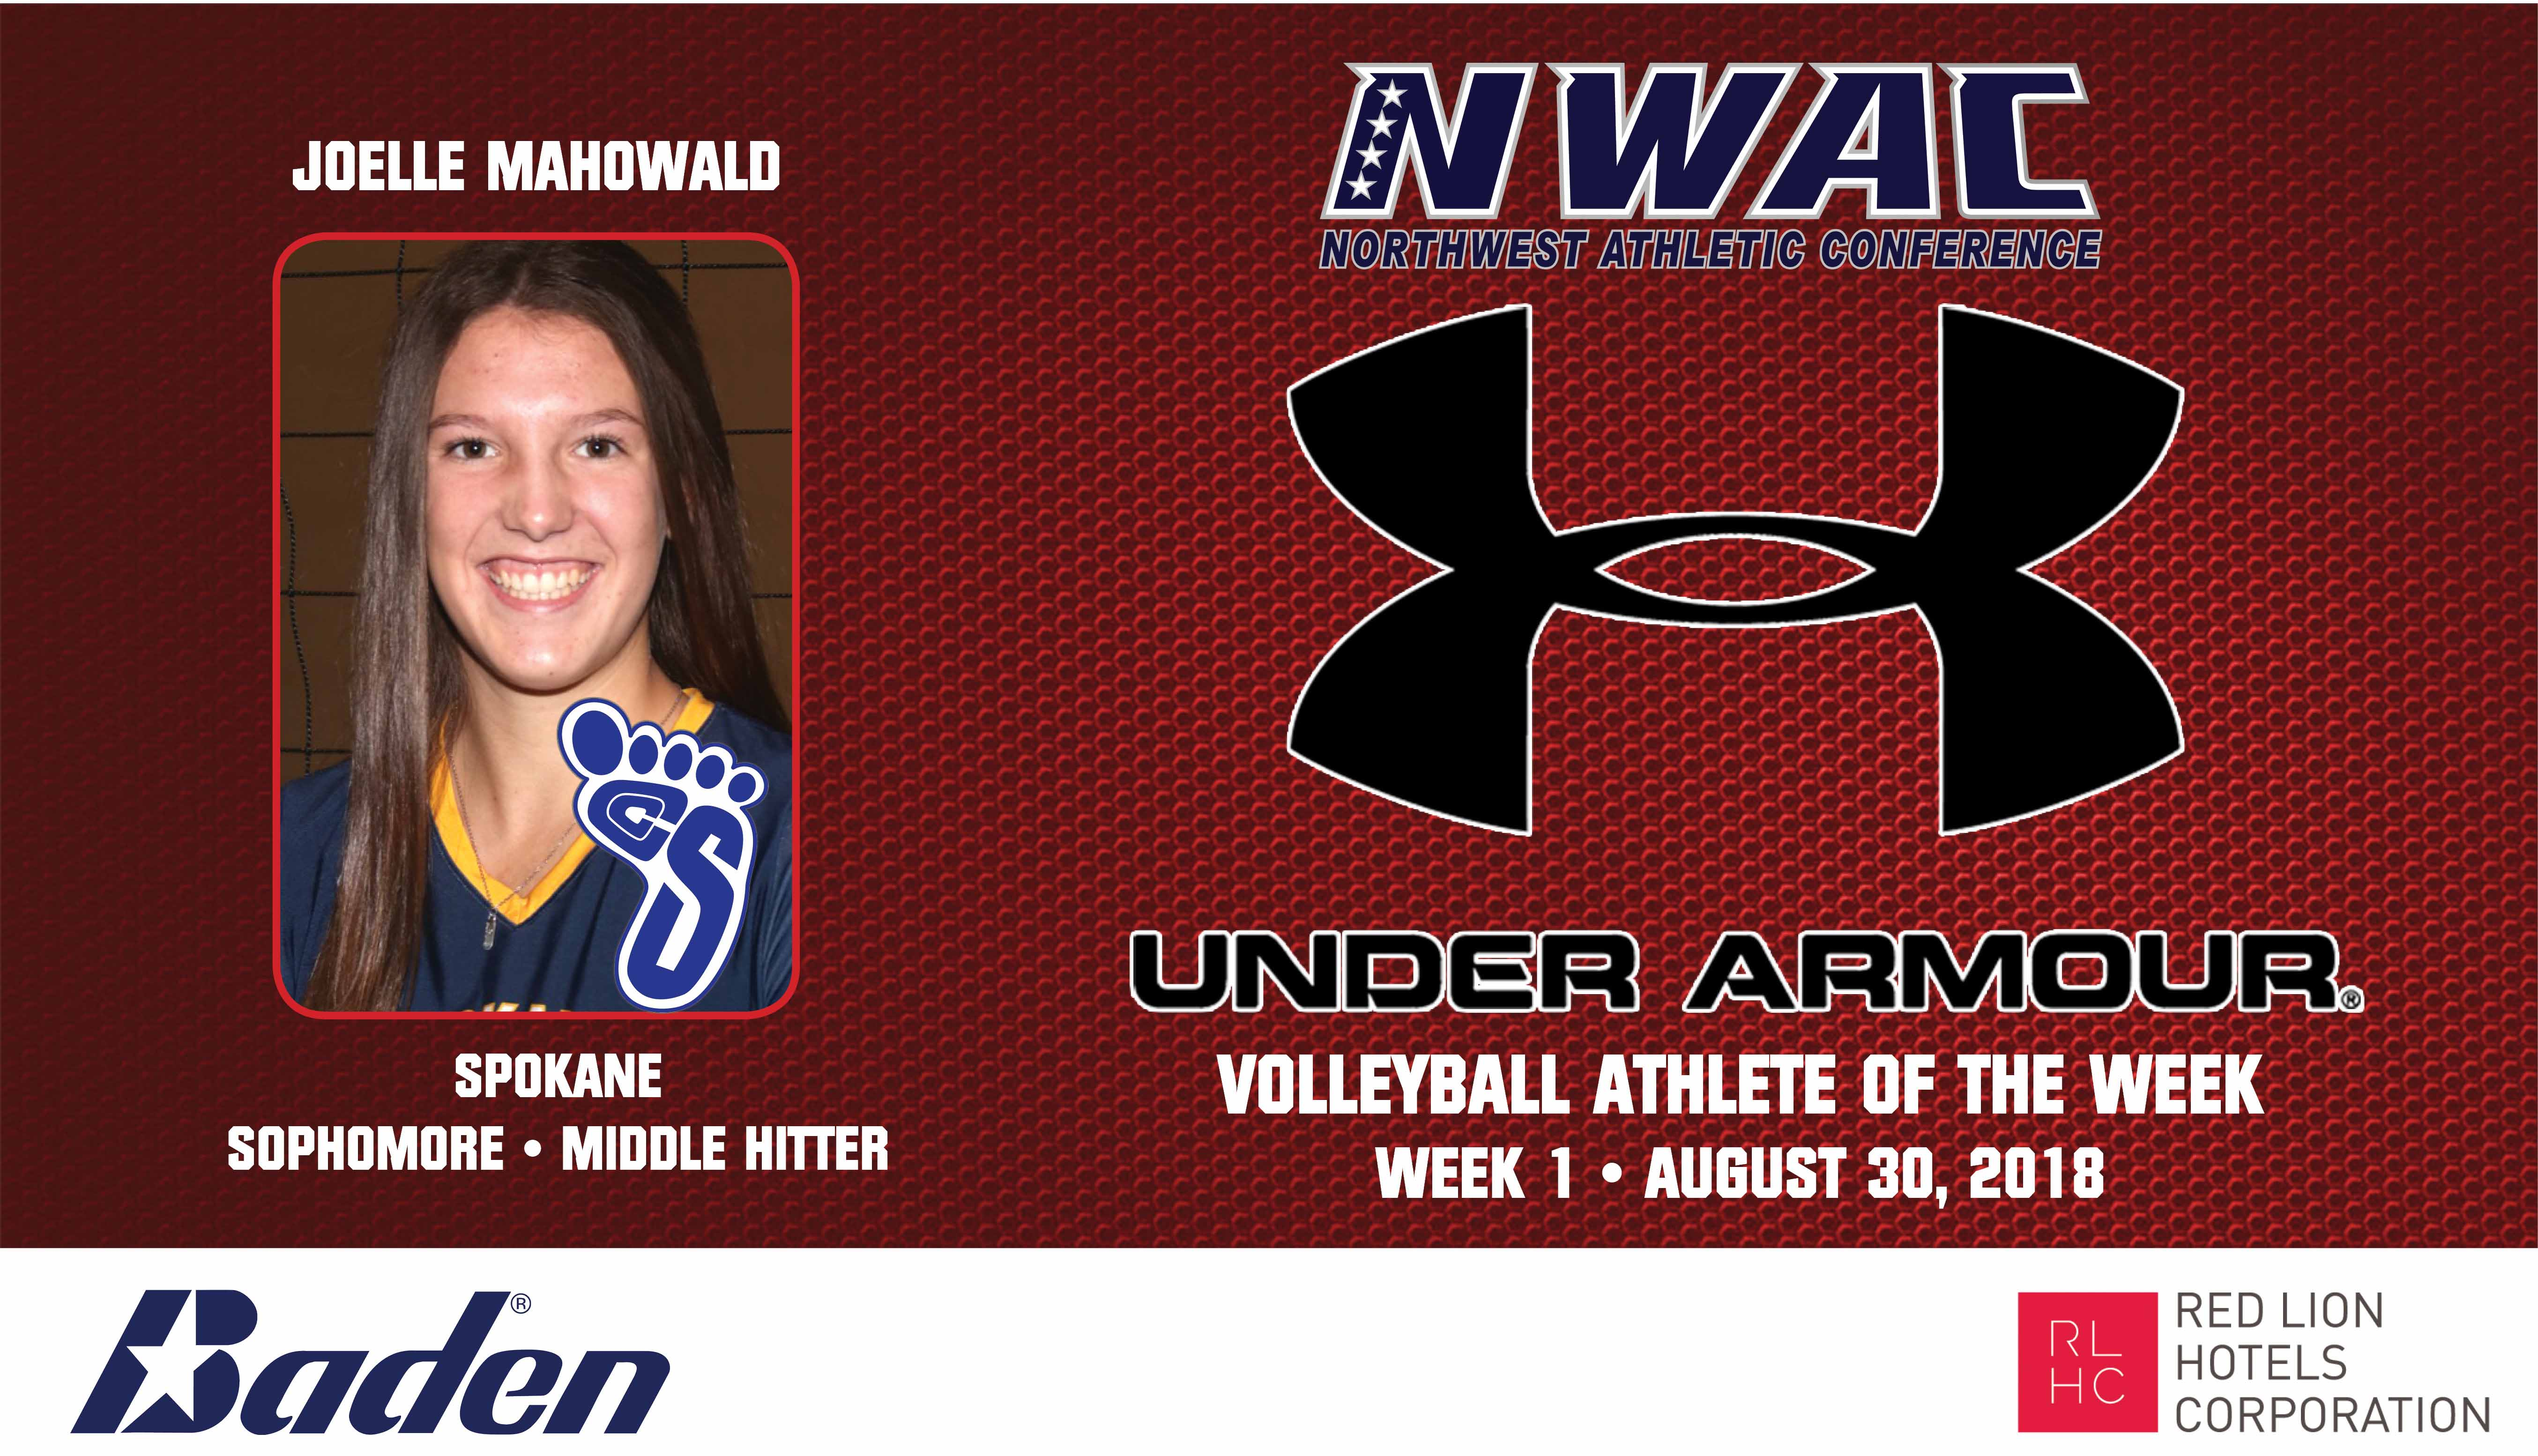 JOELLE MAHOWALD Under Armour Photo Banner